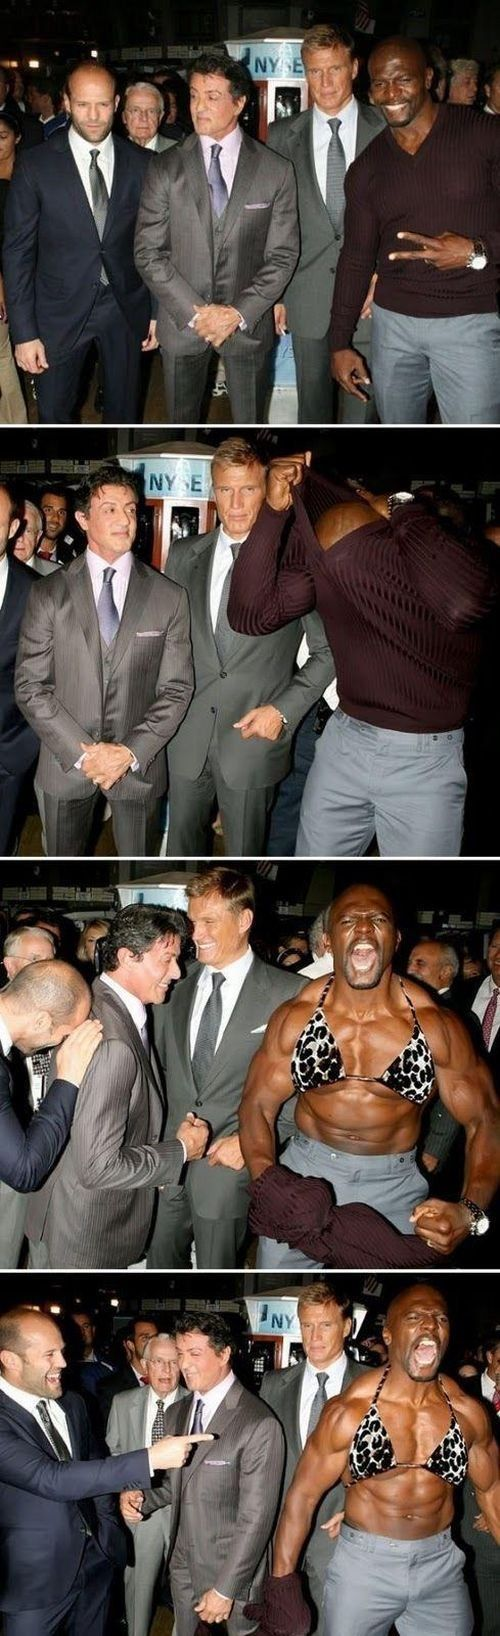 Terry Crews loses his shirt.